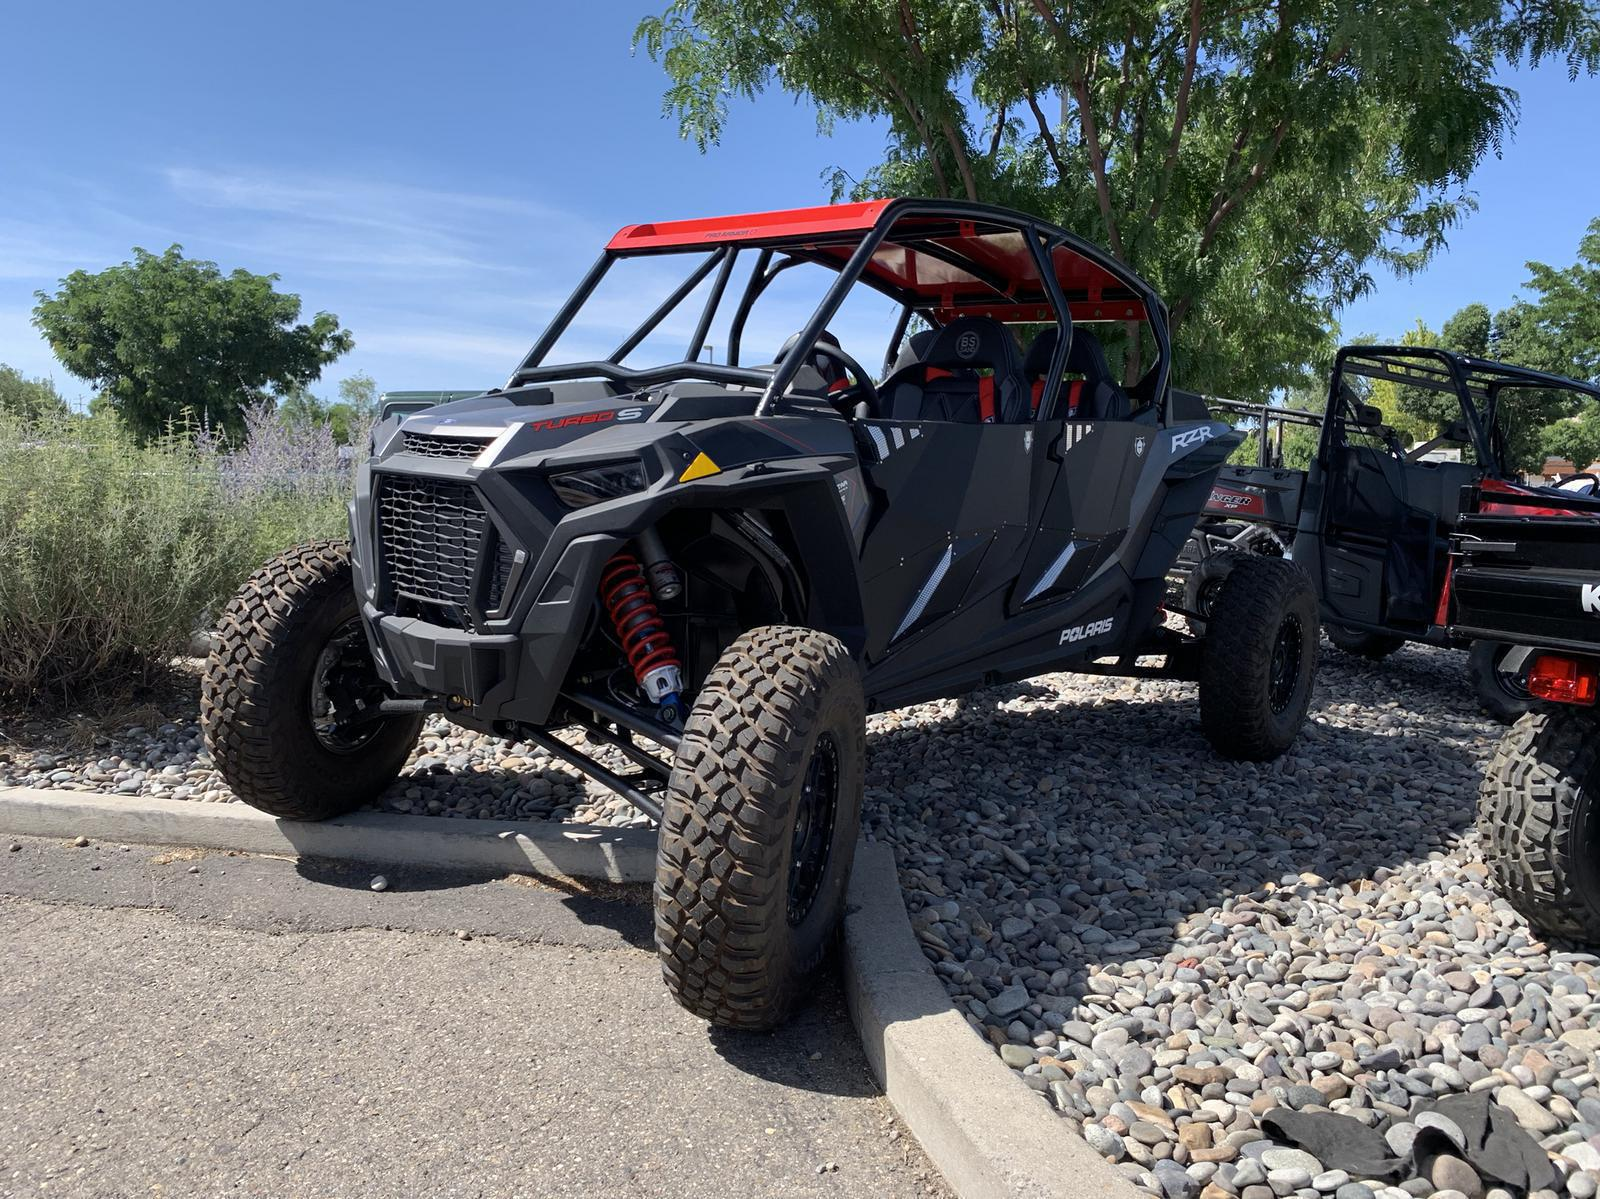 2019 Polaris Industries RZR XP® 4 Turbo S Velocity Pro Armour Build